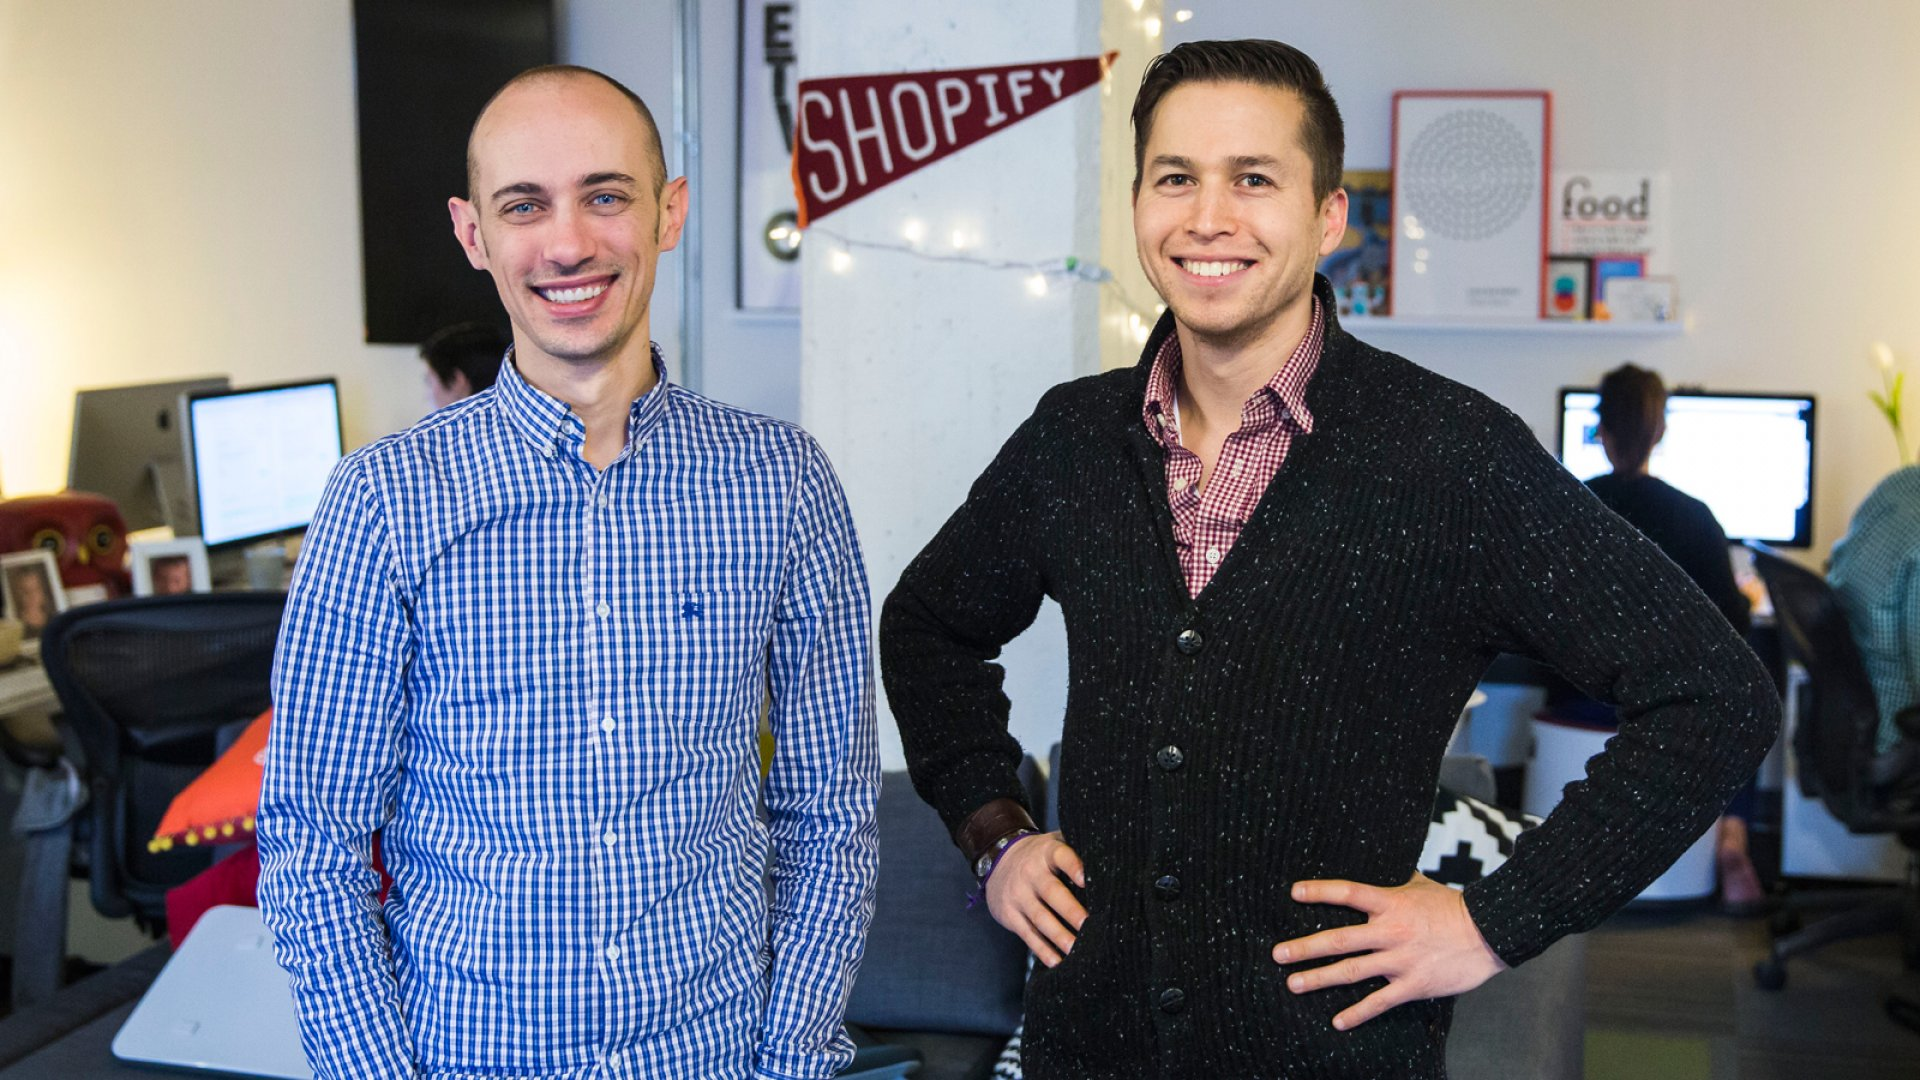 Tobias Lutke (left) and Daniel Weinand (right) are co-founders of Shopify, which went public on Thursday.